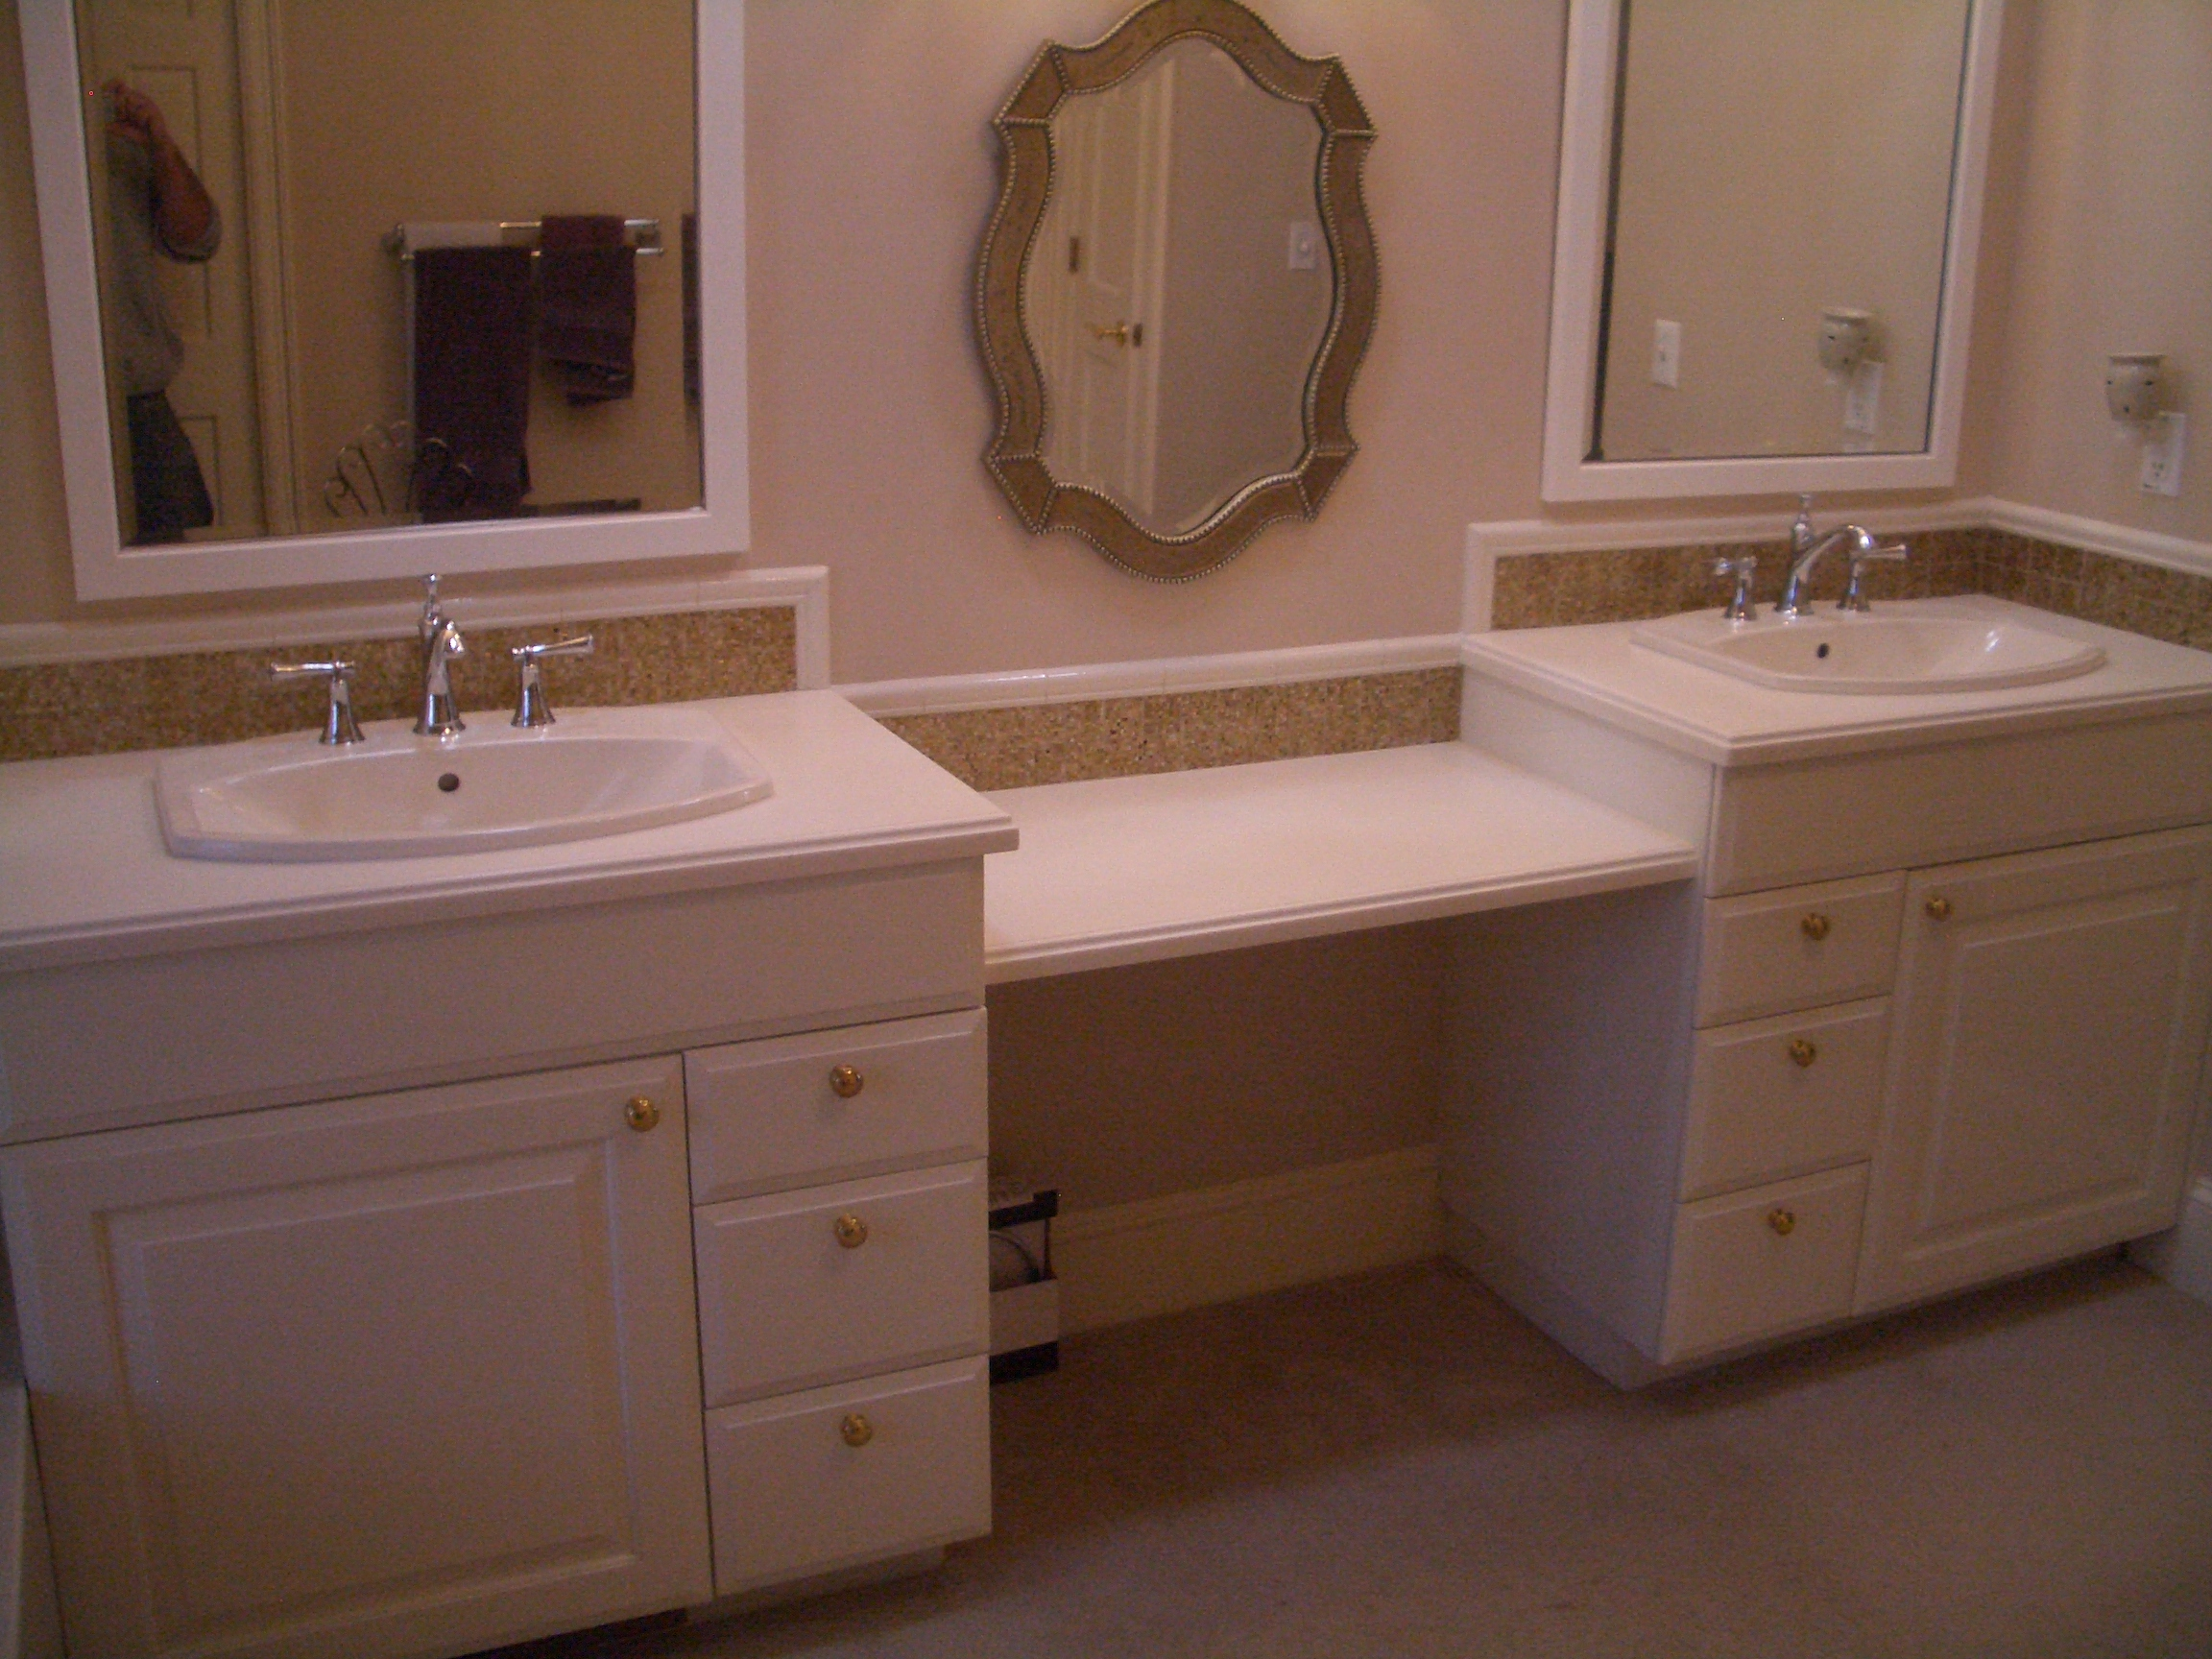 kitchen bath design center fort collins co. bathroom glass tile vanity backsplash installation in fort collins, colorado kitchen bath design center collins co \